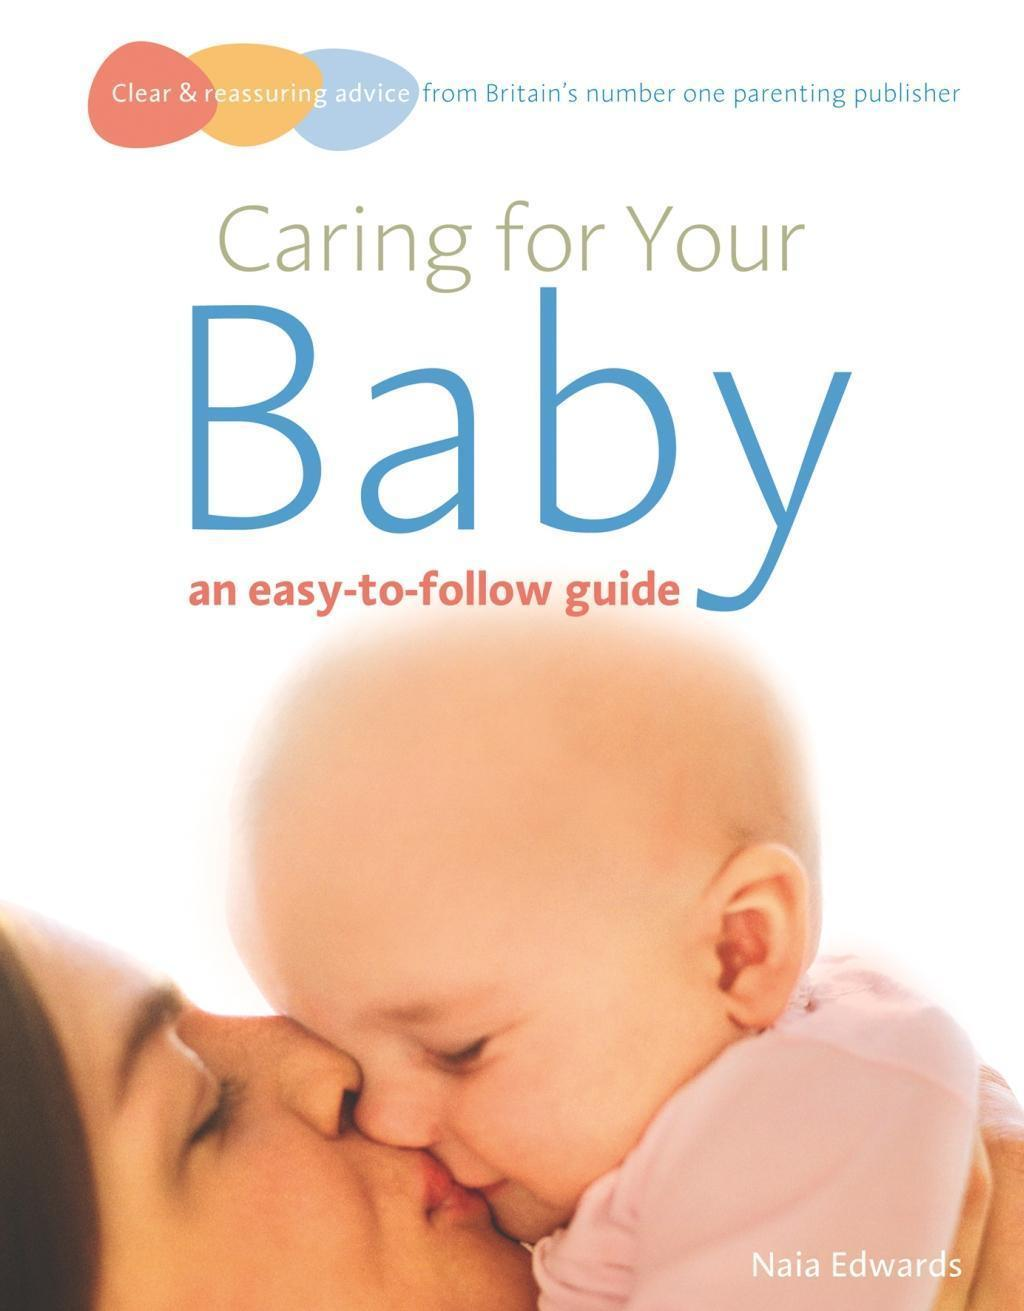 Caring for your baby